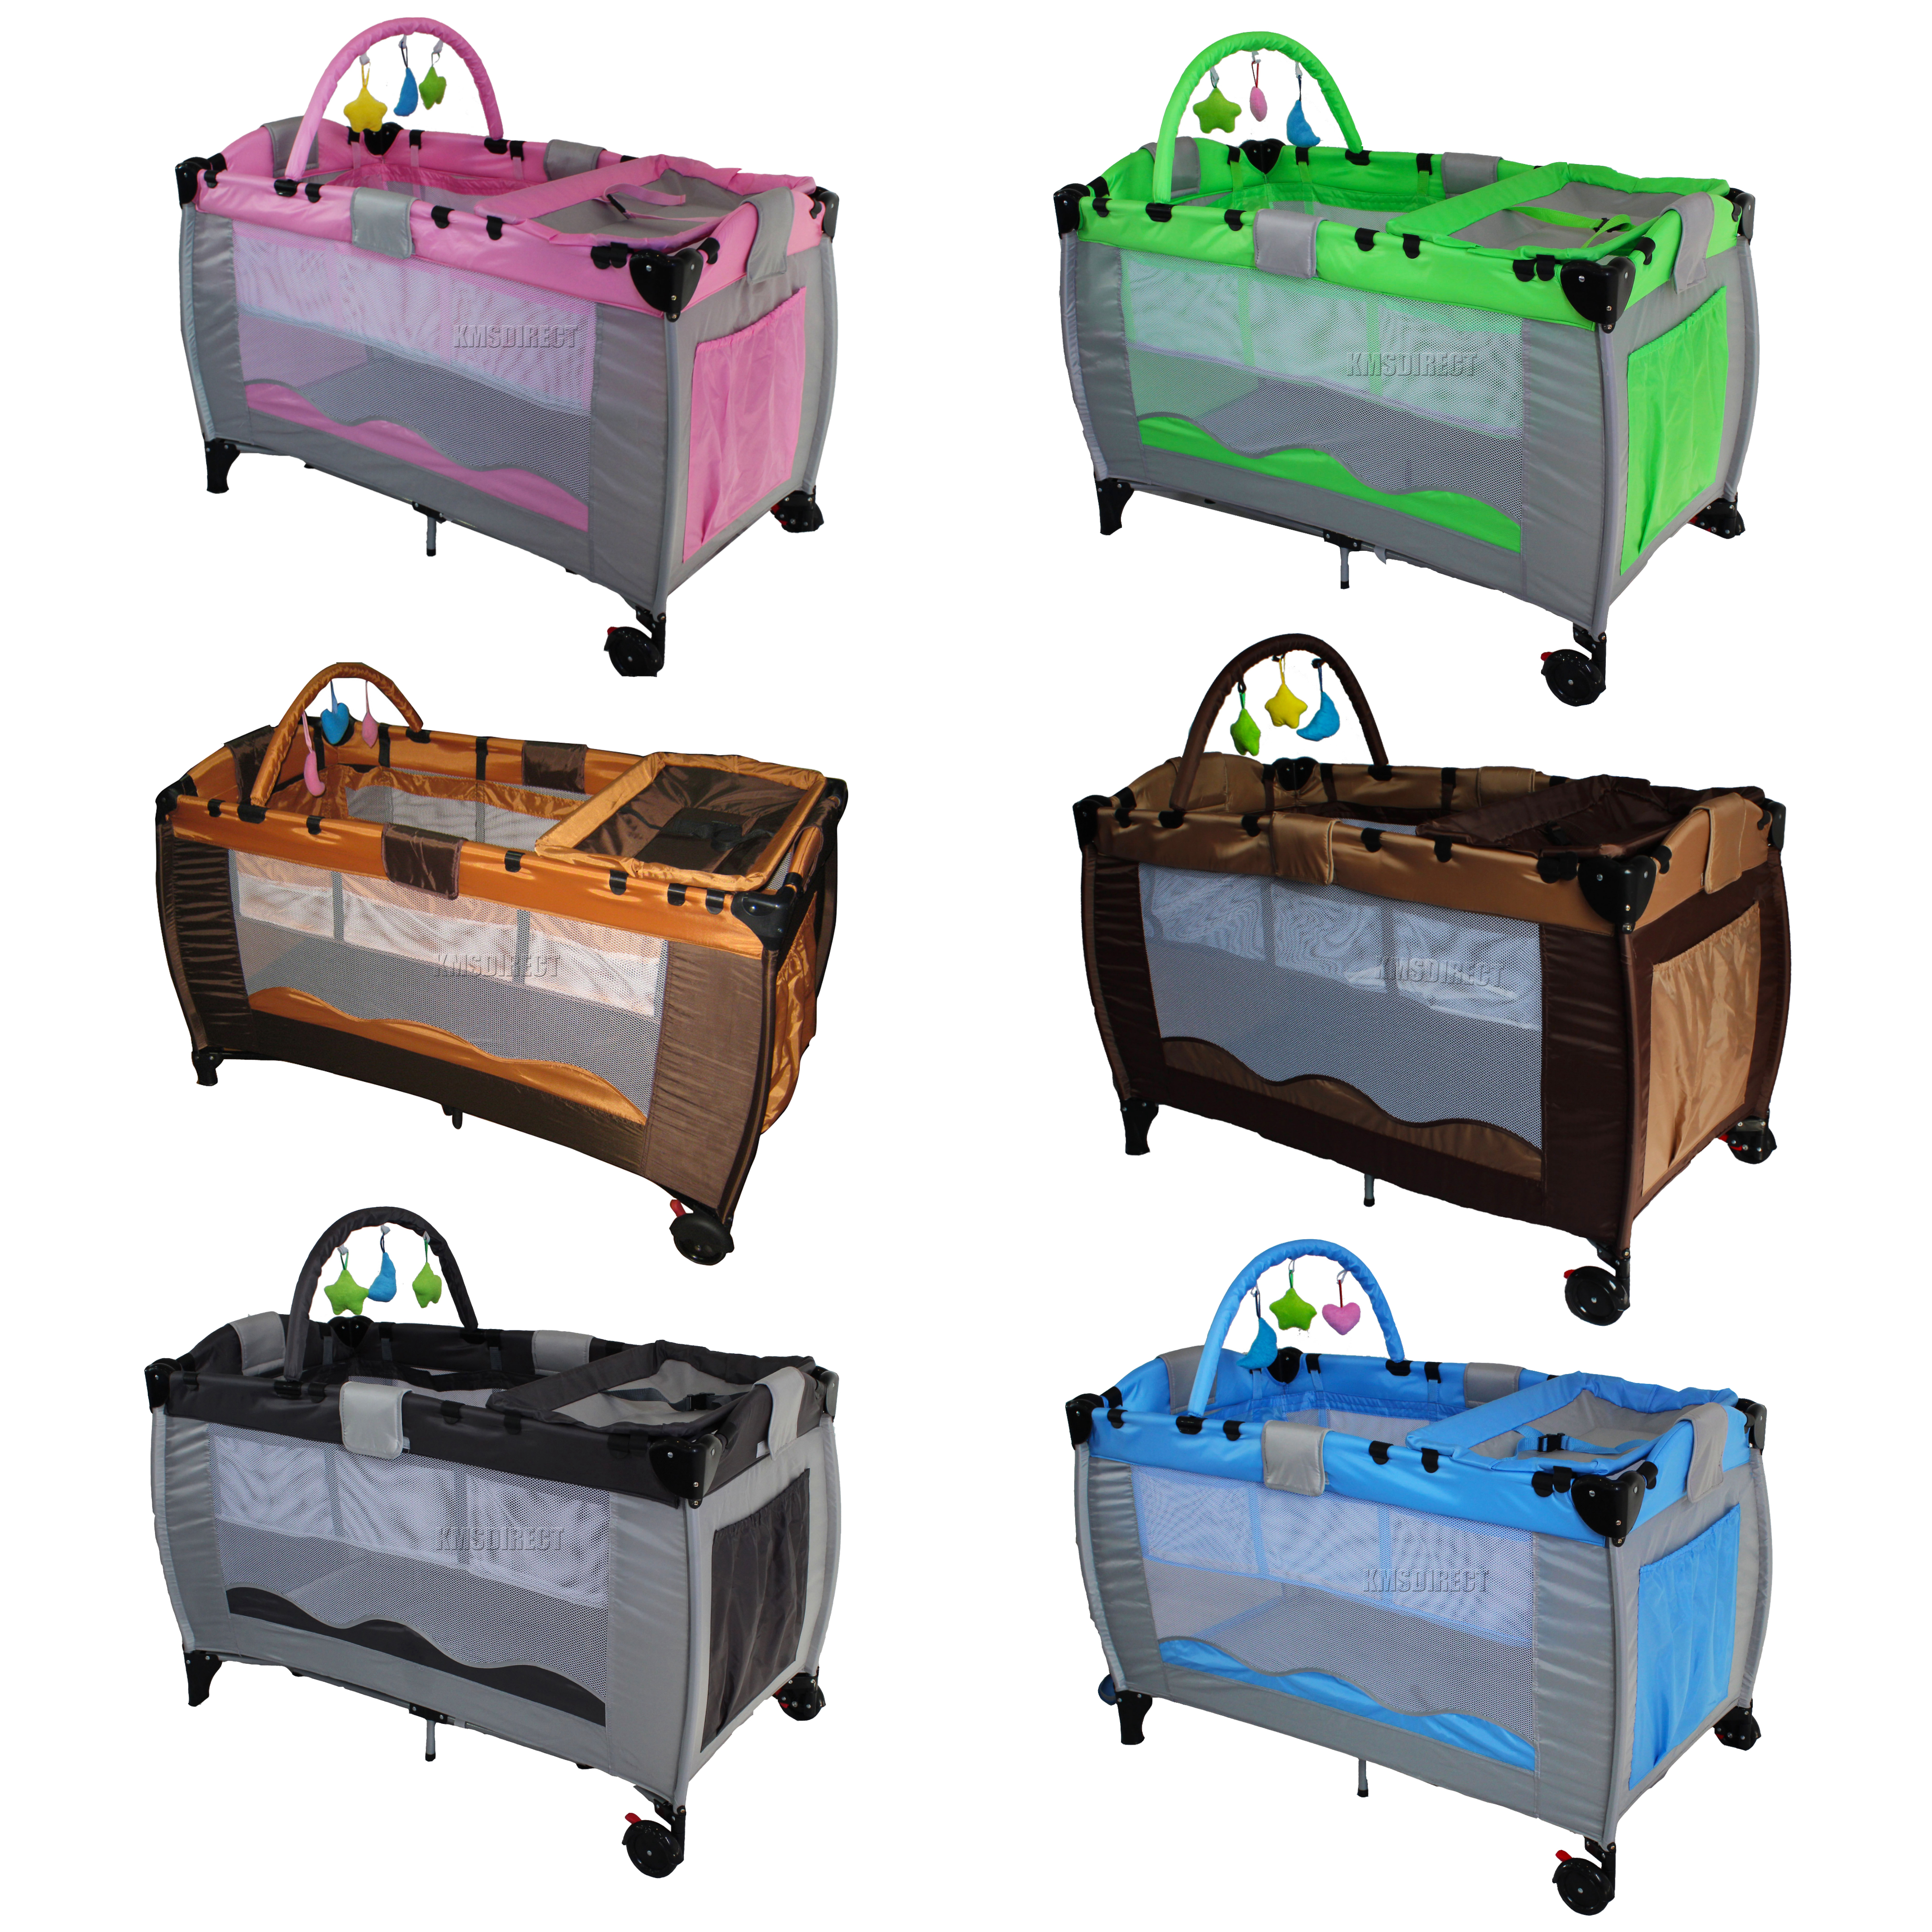 new portable child baby travel cot bed bassinet playpen play pen  - new portable child baby travel cot bed bassinet playpen play pen withentryway